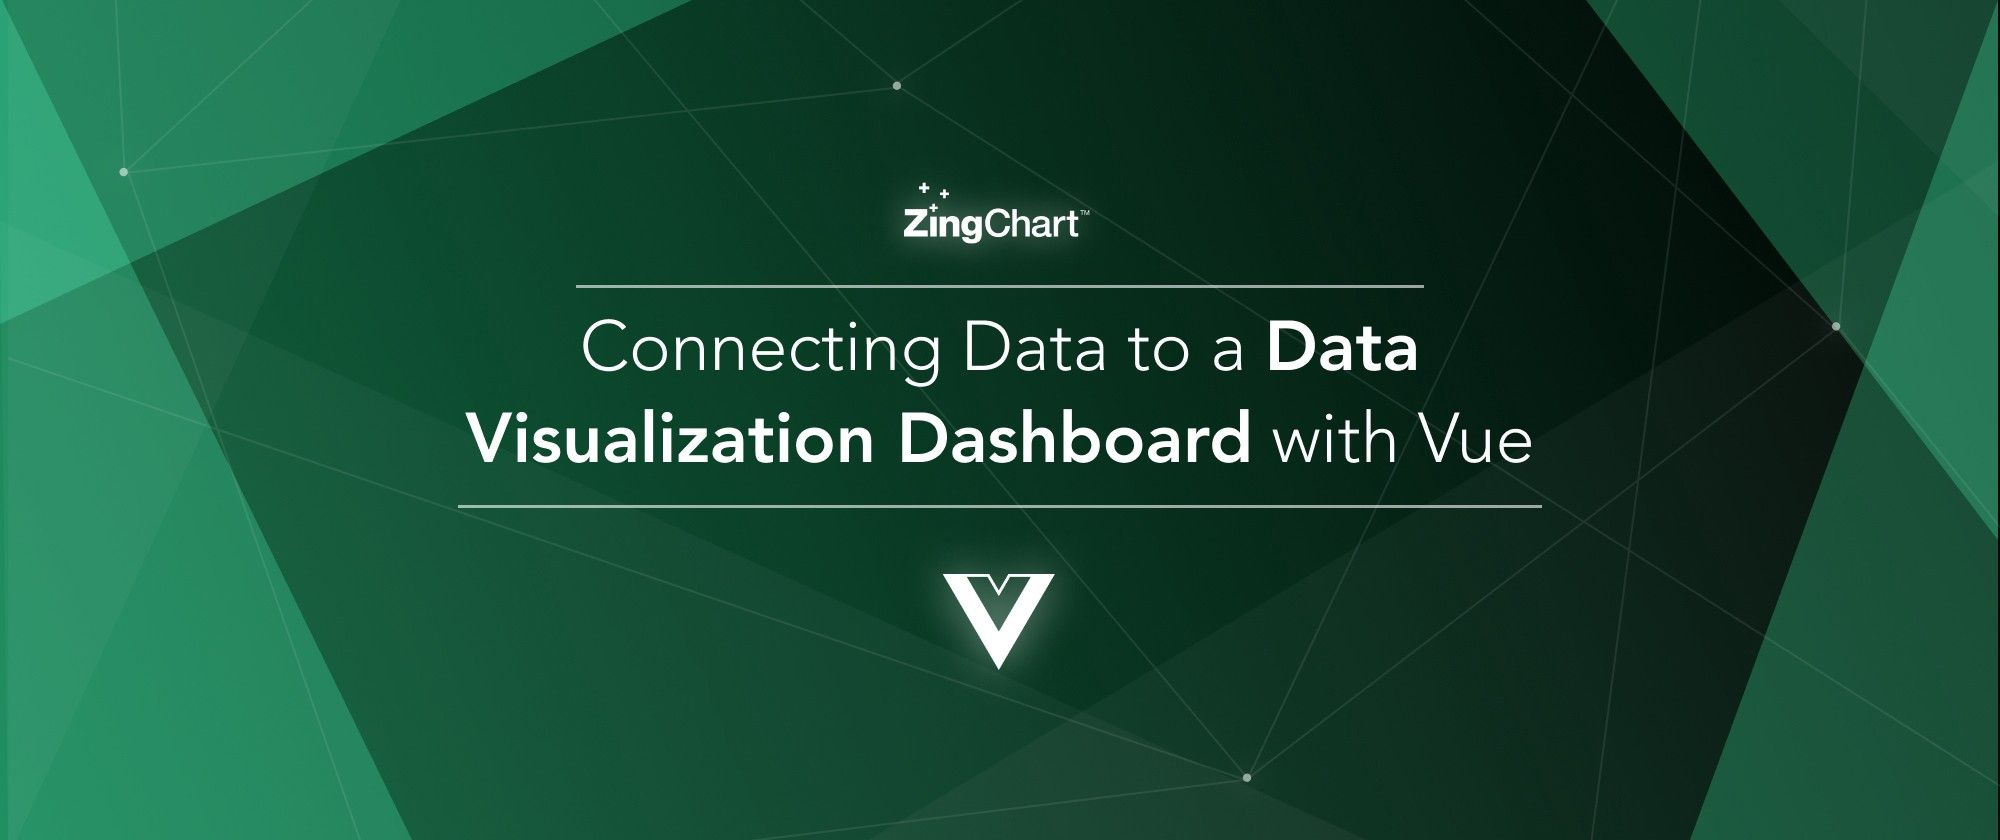 """Cover image for """"Connecting Data to a Data Visualization Dashboard with Vue"""" blog post"""